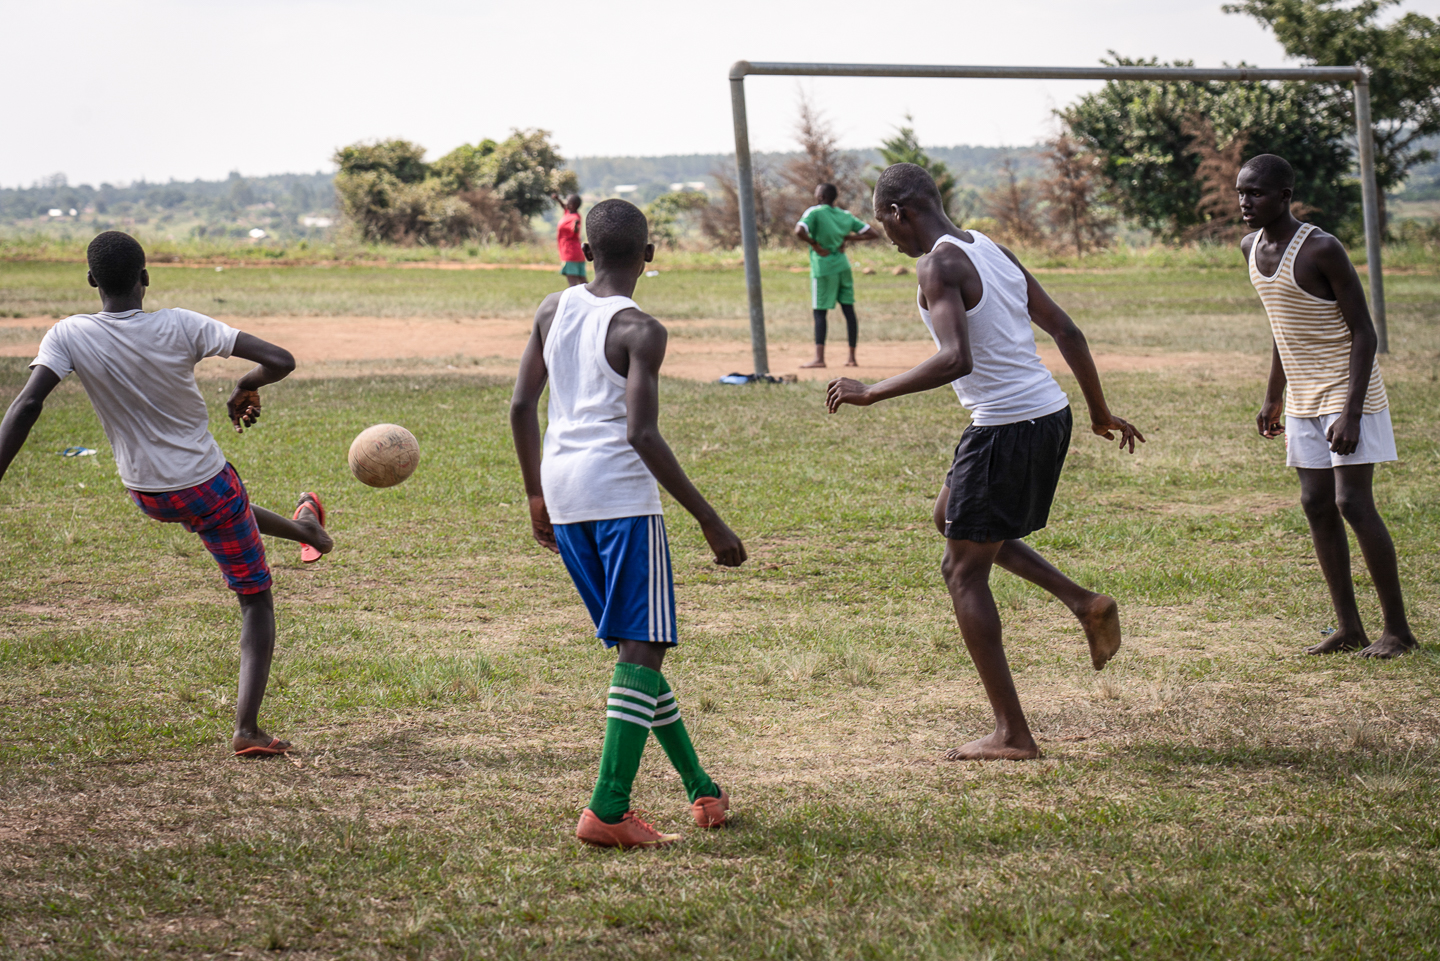 A pick-up soccer game after school.